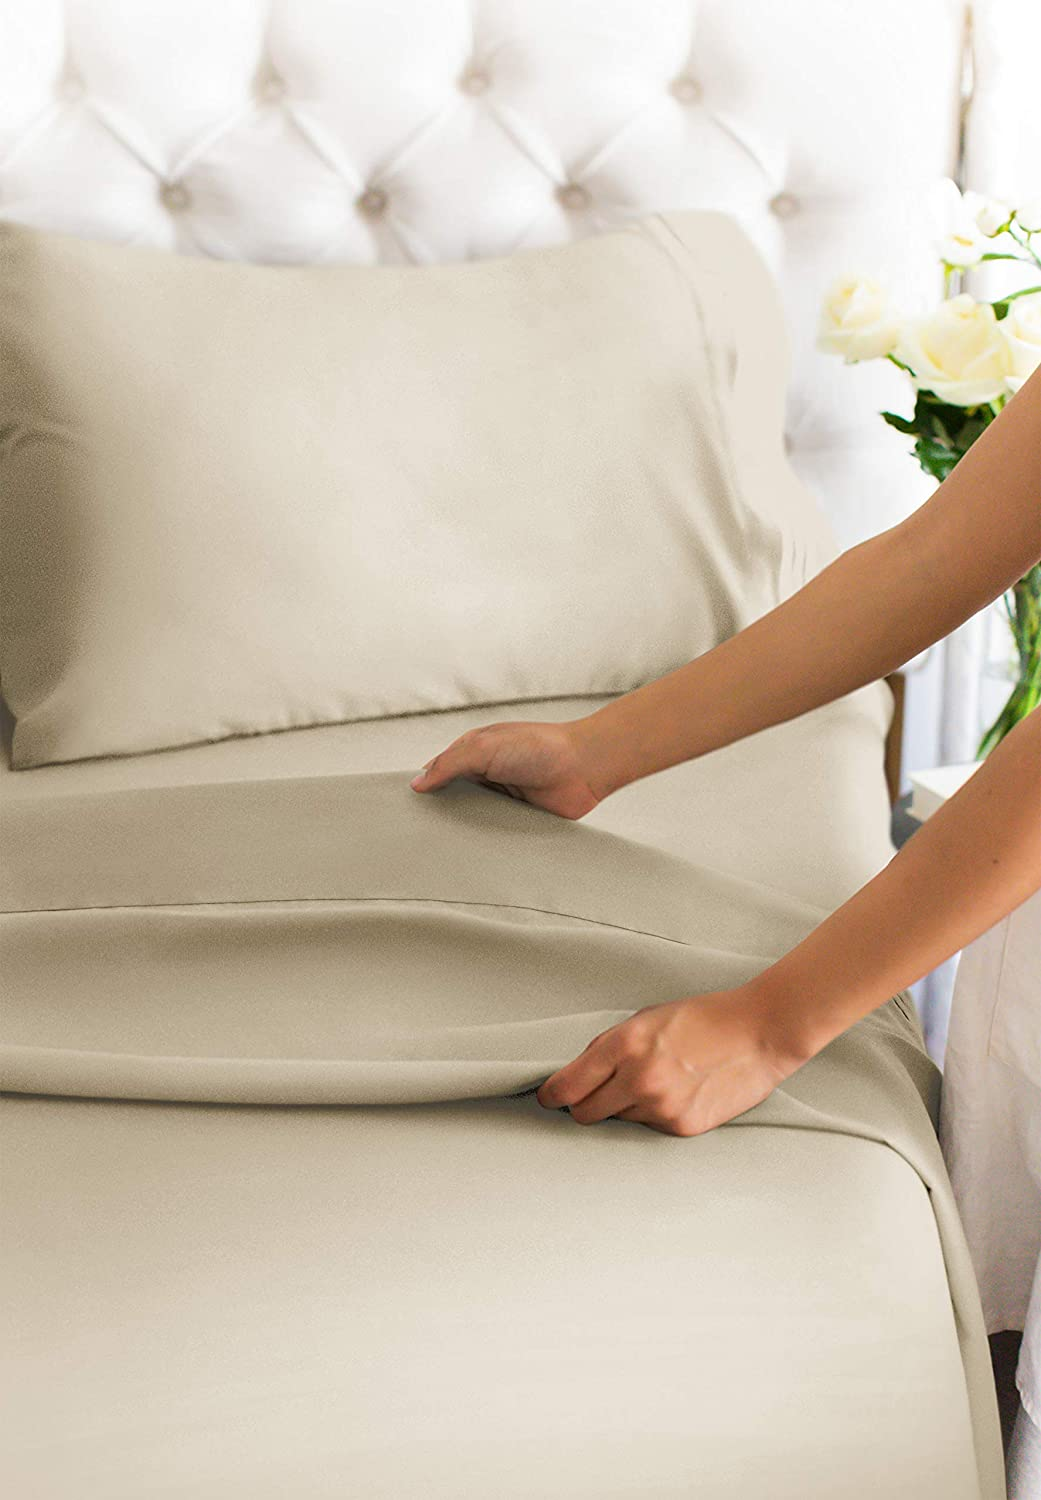 Queen Size Sheet Set - 4 Piece Set - Hotel Luxury Bed Sheets - Extra Soft - Deep Pockets - Easy Fit - Breathable & Cooling - Wrinkle Free - Comfy – Beige Tan Bed Sheets - Queens Sheets – 4 PC: Home & Kitchen